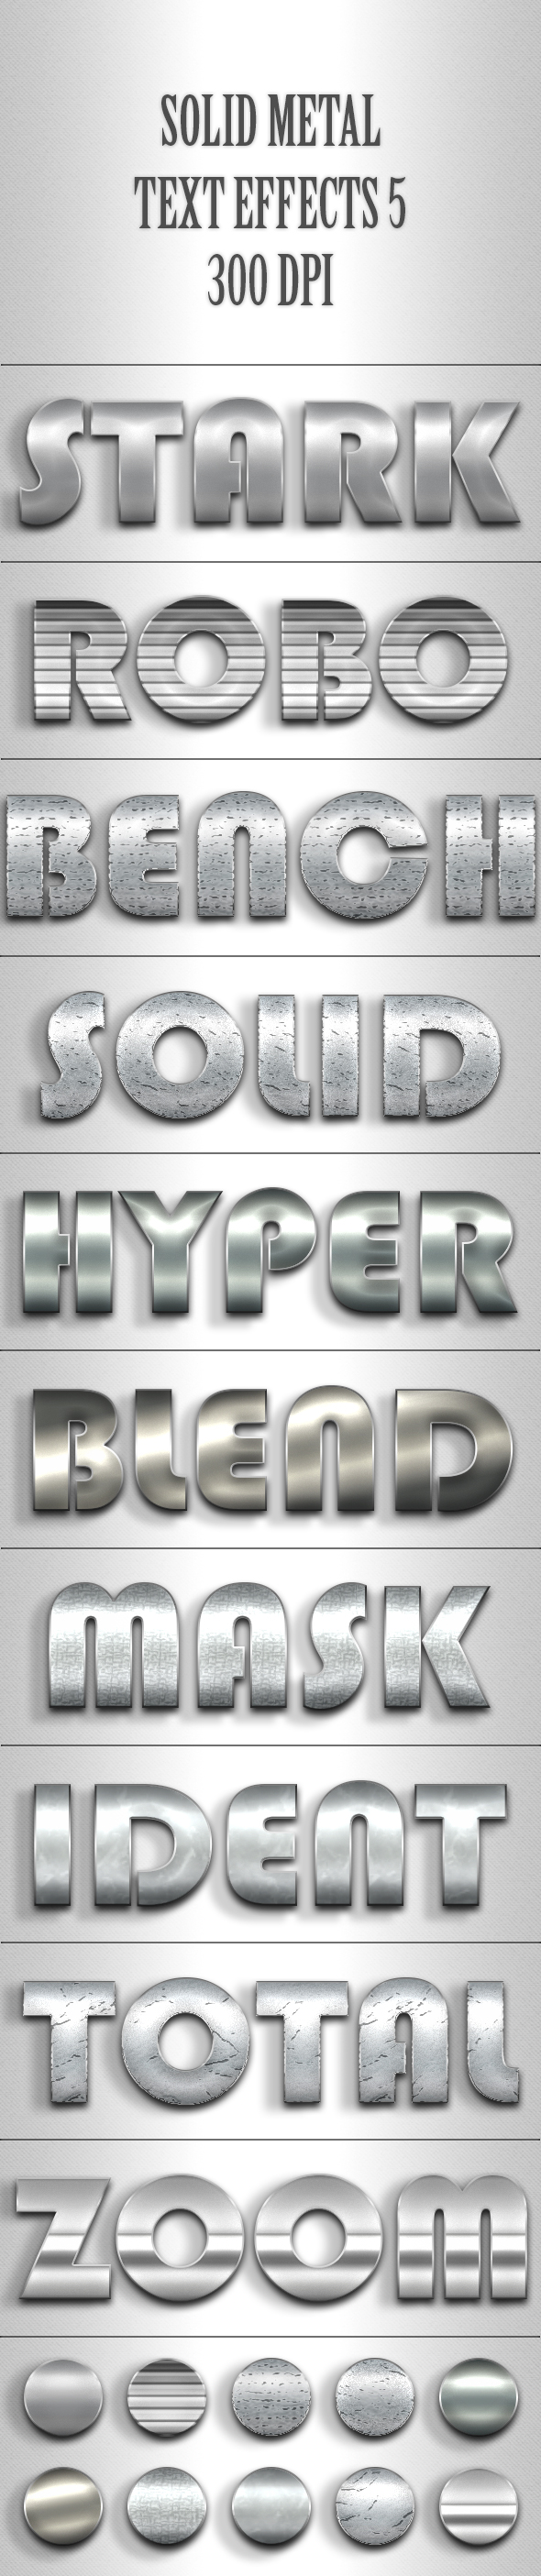 Solid Metal Text Effects 5 - Text Effects Styles